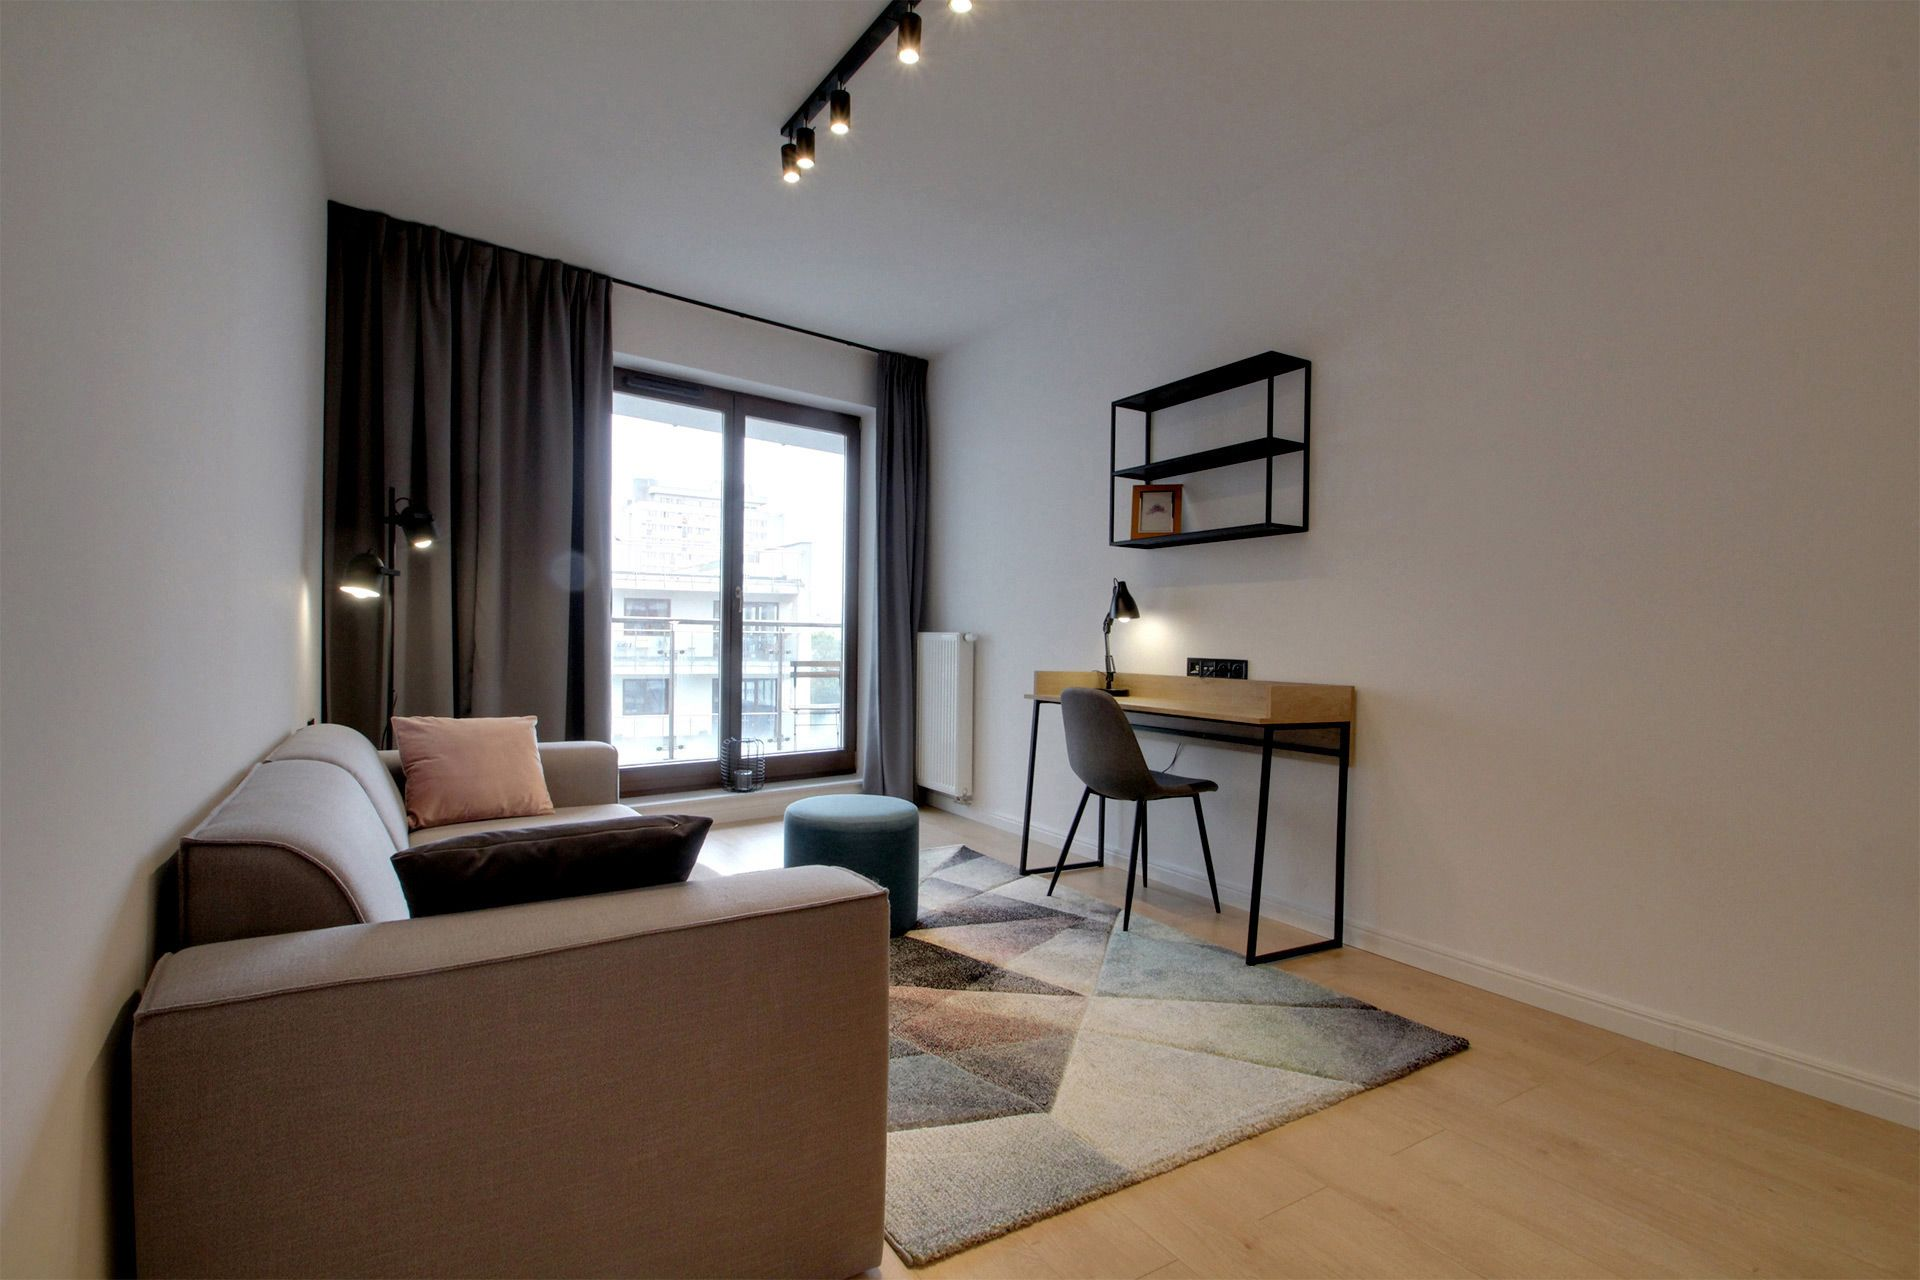 1 Bedroom - Large apartment to rent in Warsaw UPR-A-017-1